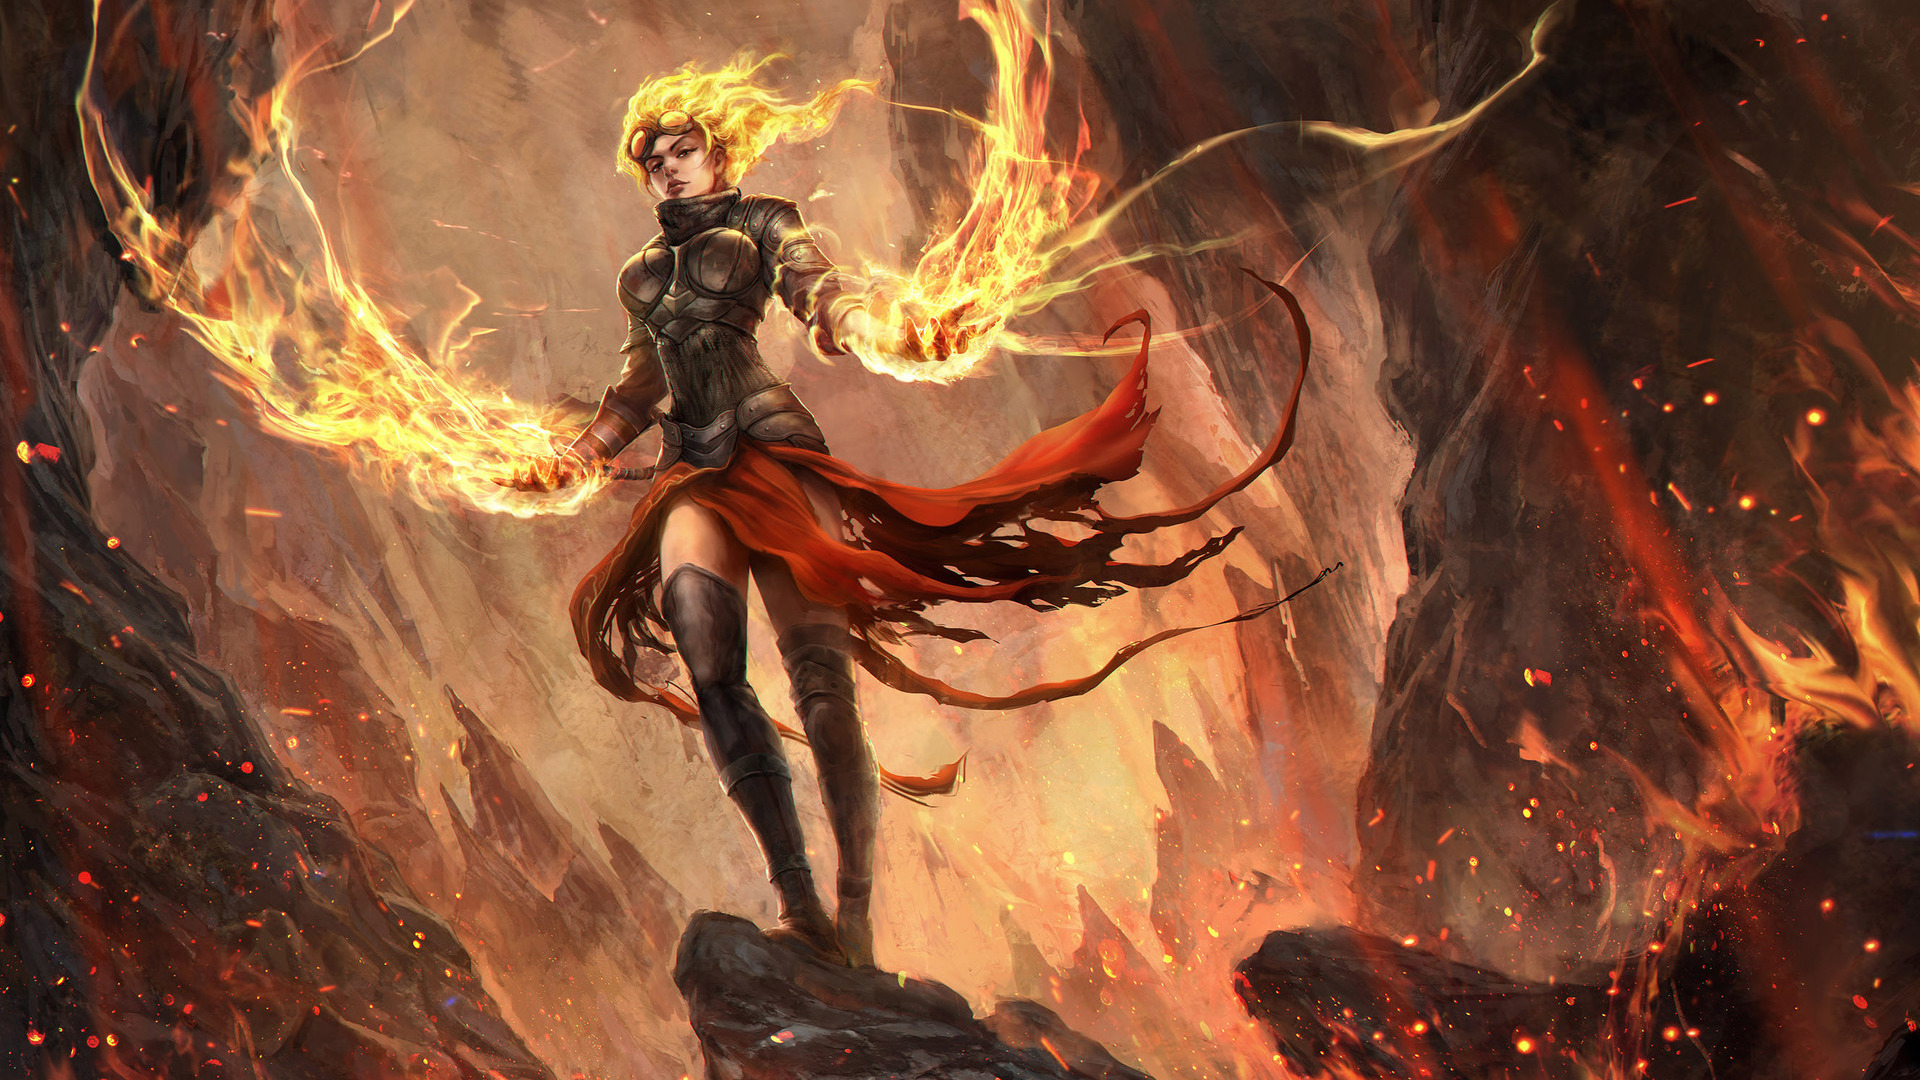 Libros De Magic The Gathering Chandra Nalaar Magic The Gathering Digital Art Fire